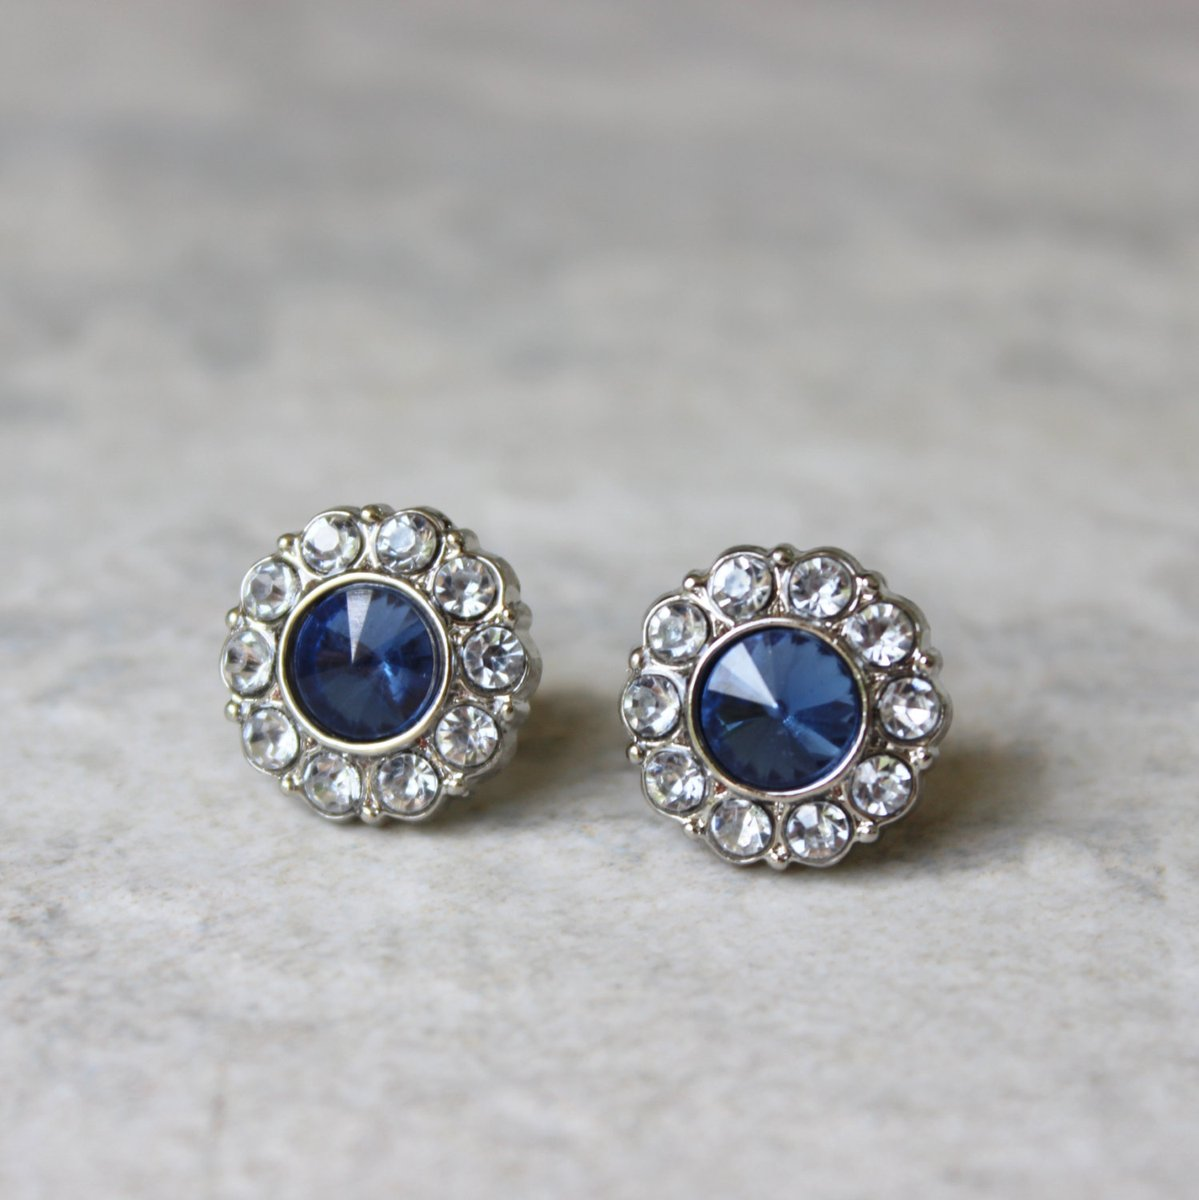 Sapphire Blue Earrings, Blue Wedding Jewelry, Blue Earrings, Crystal Earrings, Bridesmaid Earring Gift, Bridesmaid Earrings, Rhinestones  #gifts #shopsmall #smallbiz #ecommerce #style #etsyshop #shopping #etsy